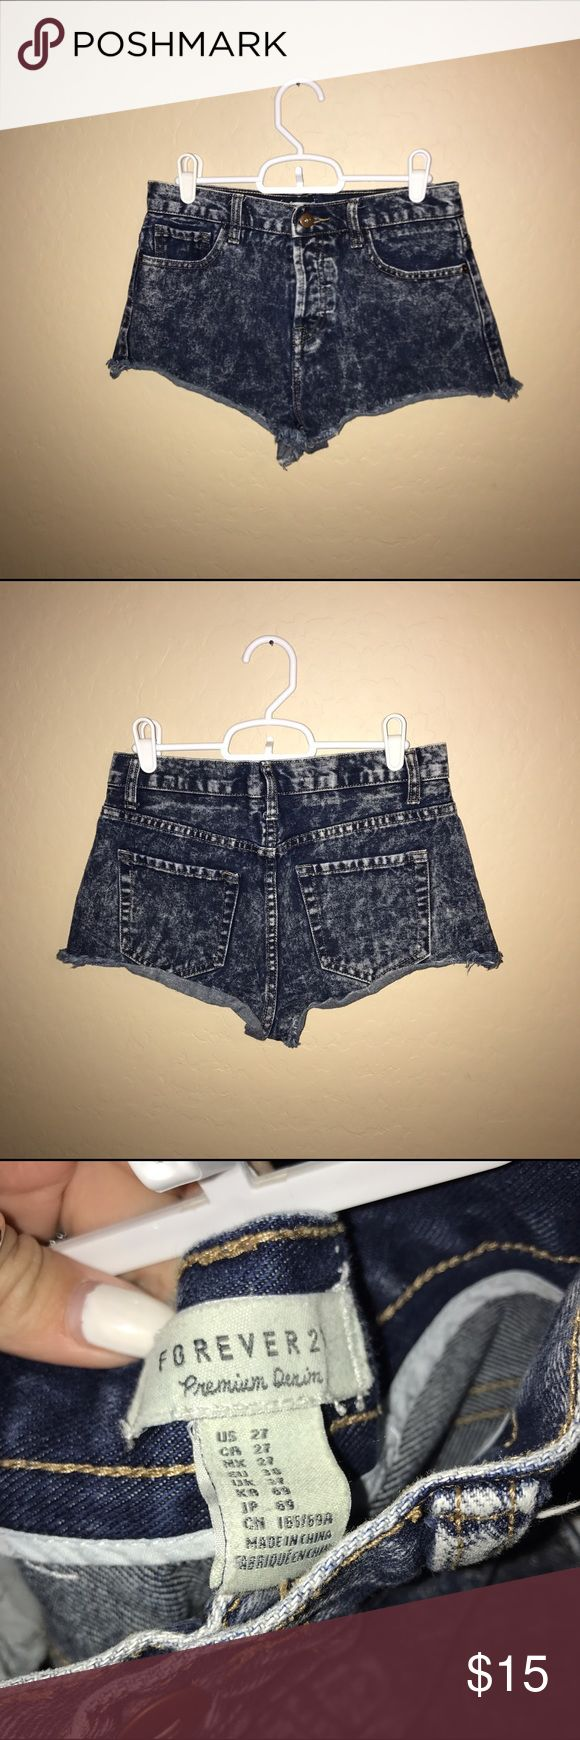 Forever 21 washed shorts! Forever 21 washed shorts! Button up in the front ! Kinda high wasted! Cute and comfy! Only worn a couple times!! #cute #comfy #jean #shorts #jeanshorts #washed #washedjeans #washedshorts #forever21 Forever 21 Shorts Jean Shorts